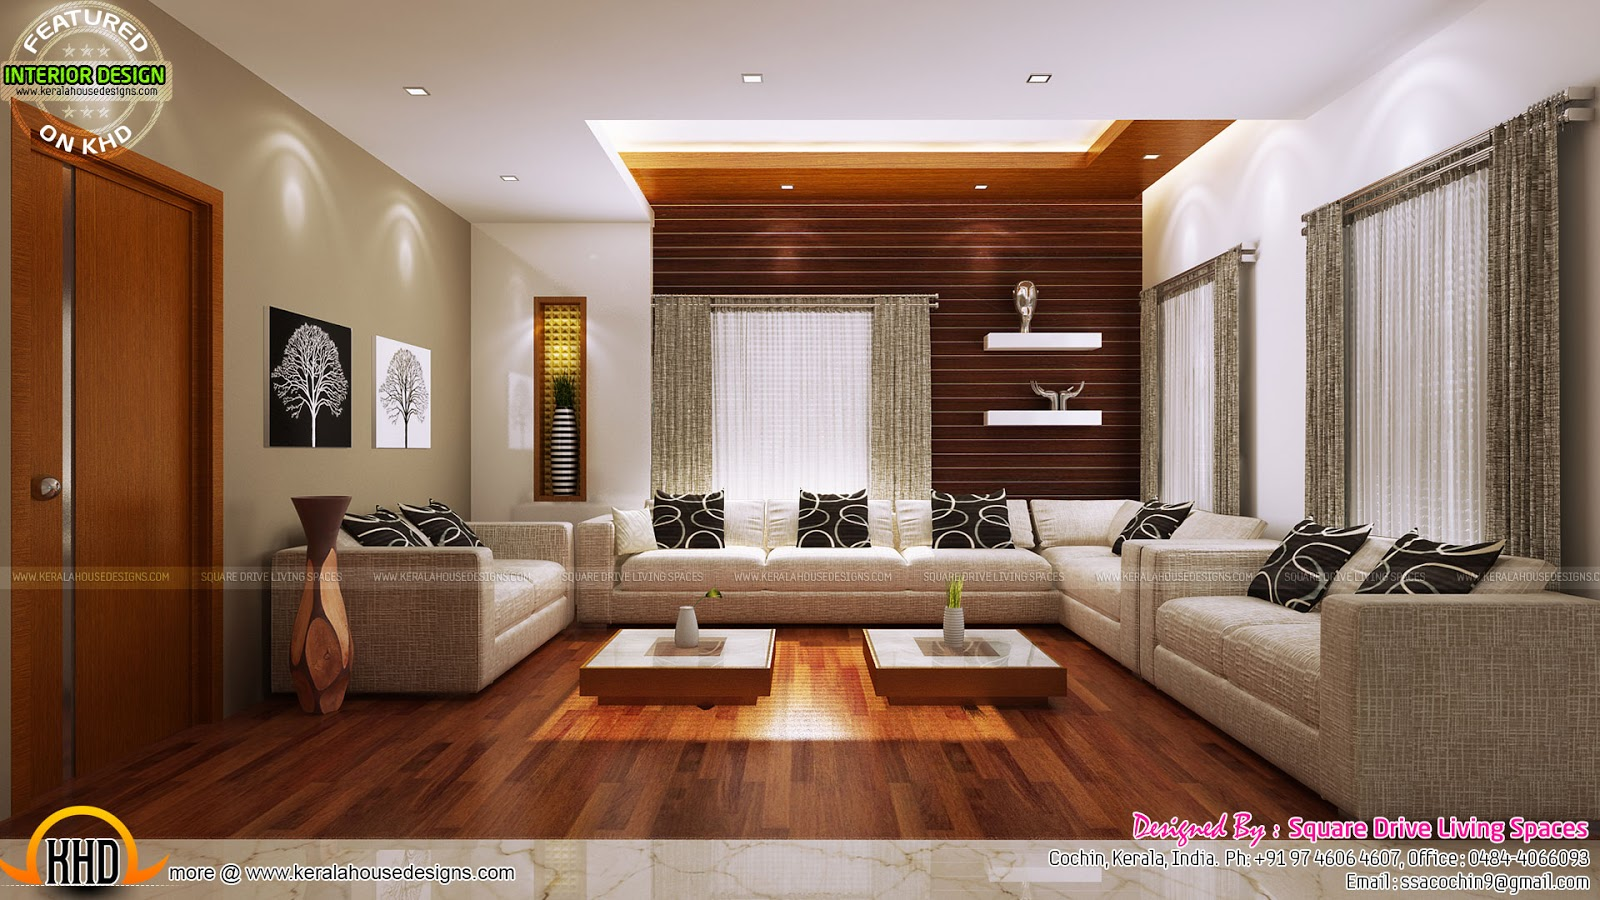 Excellent kerala interior design kerala home design and for Kerala home interior